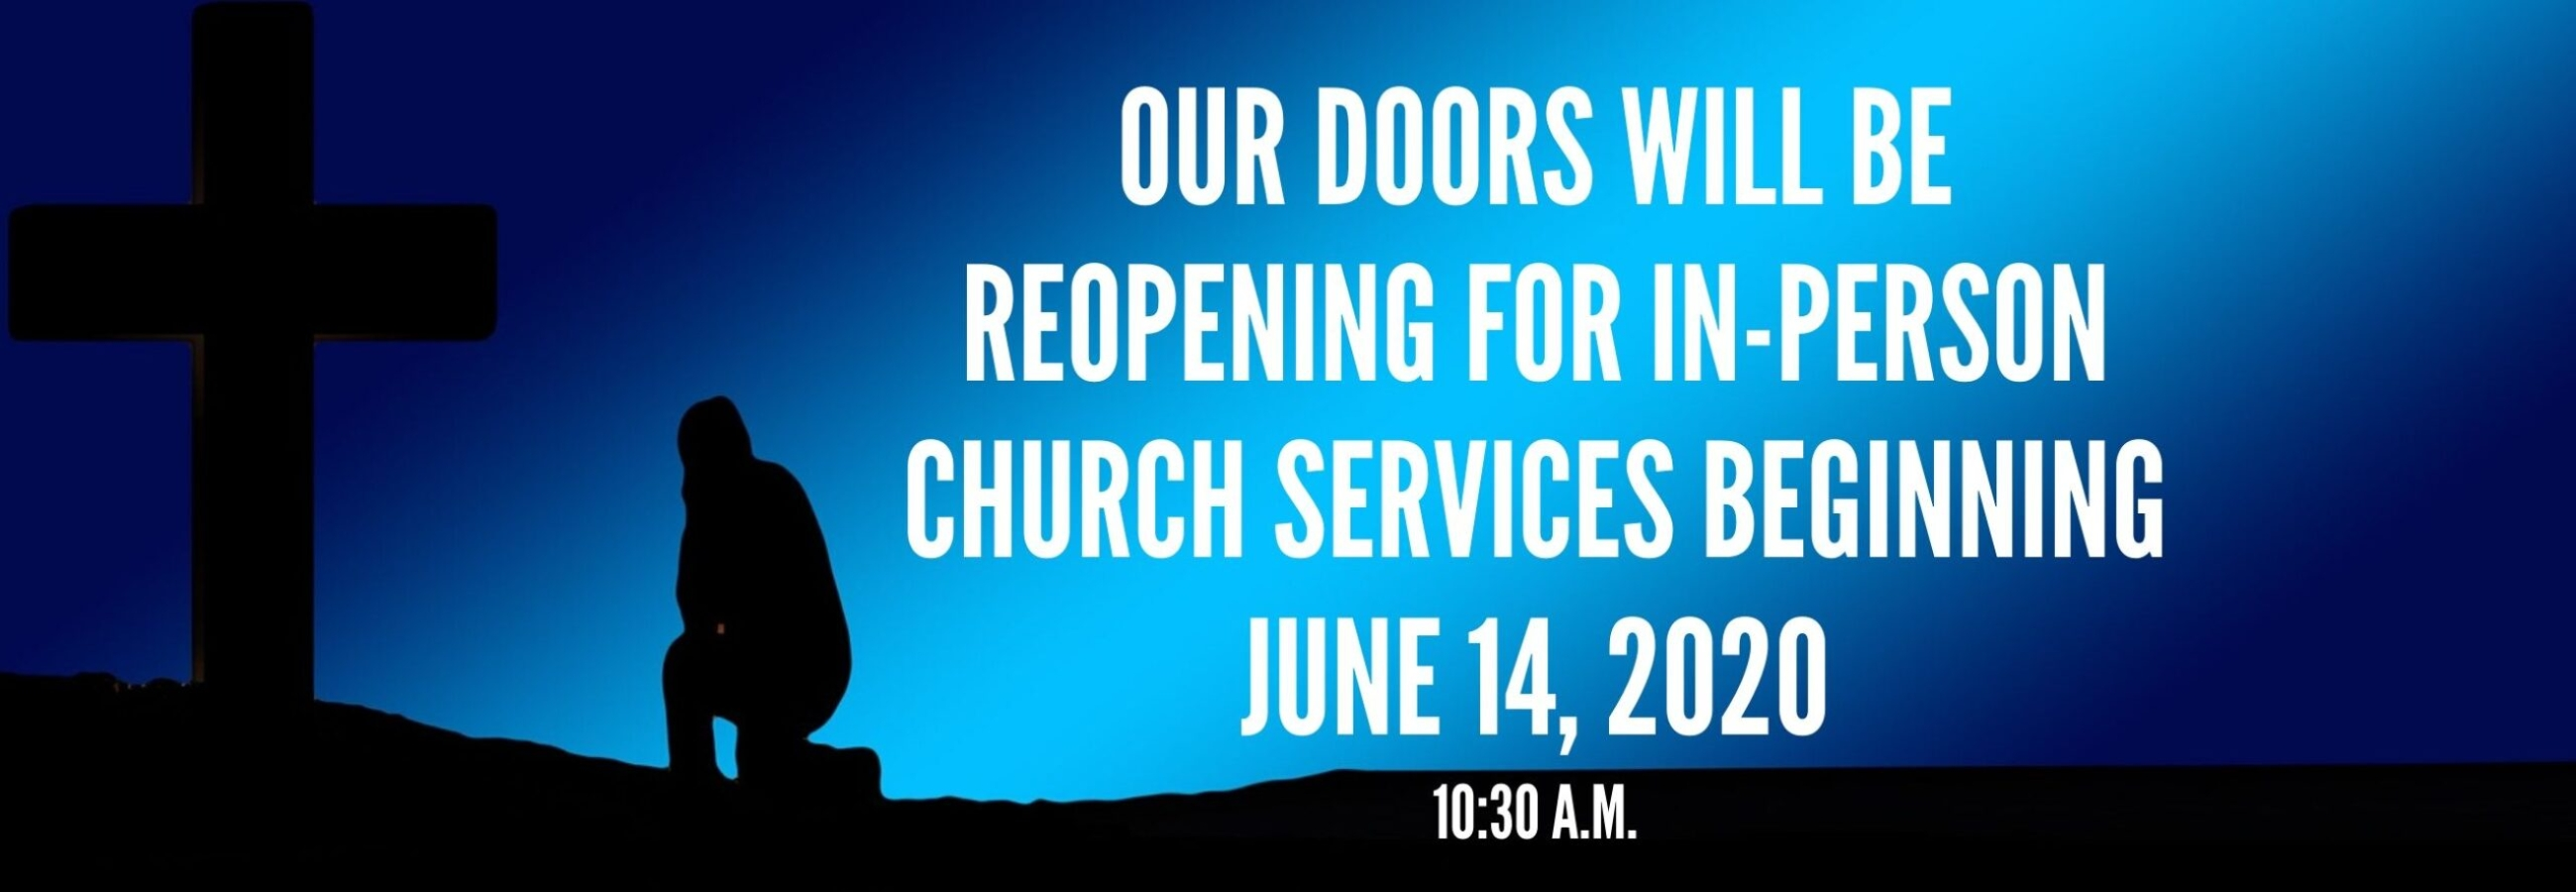 Weymouth Community Church Reopening in-person church service